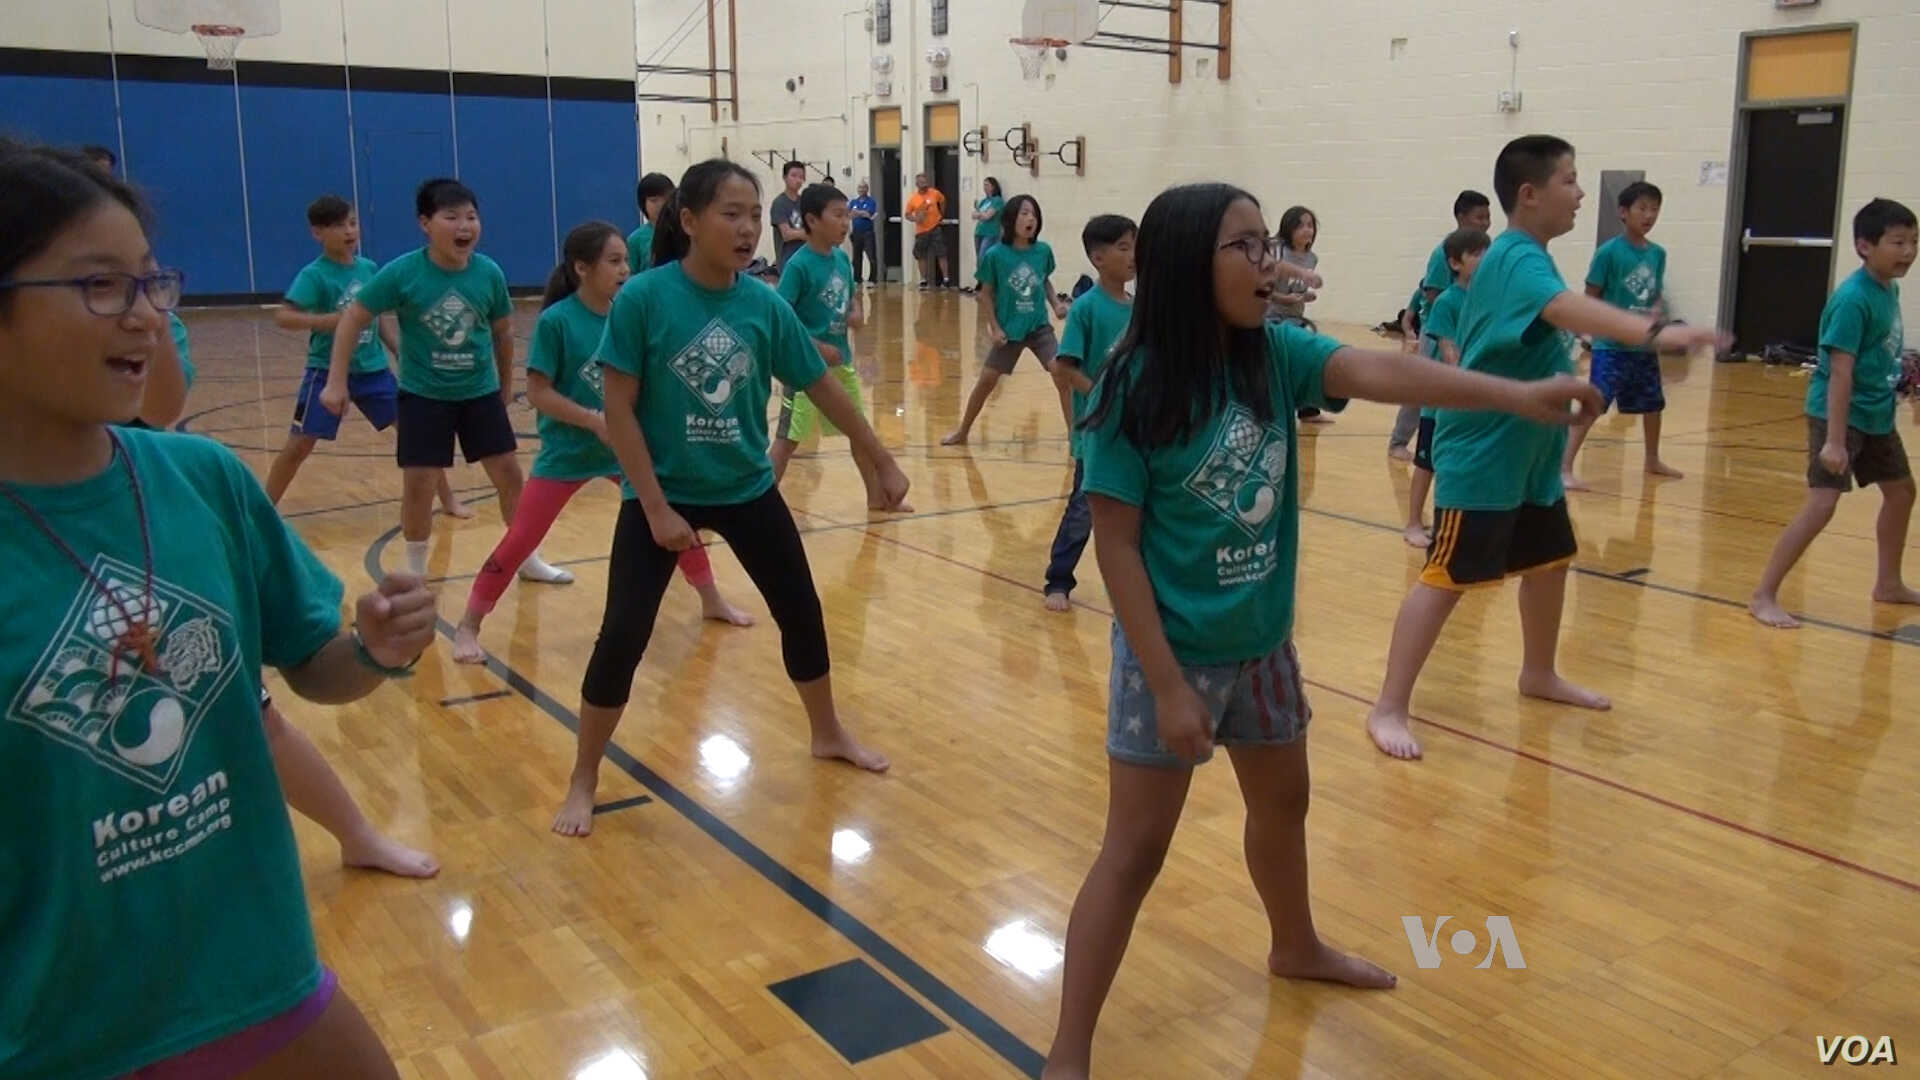 It wouldn't be Korean Cultrue Camp without a class on Teakwondo, the Korean martial art characterized by head high kicks.